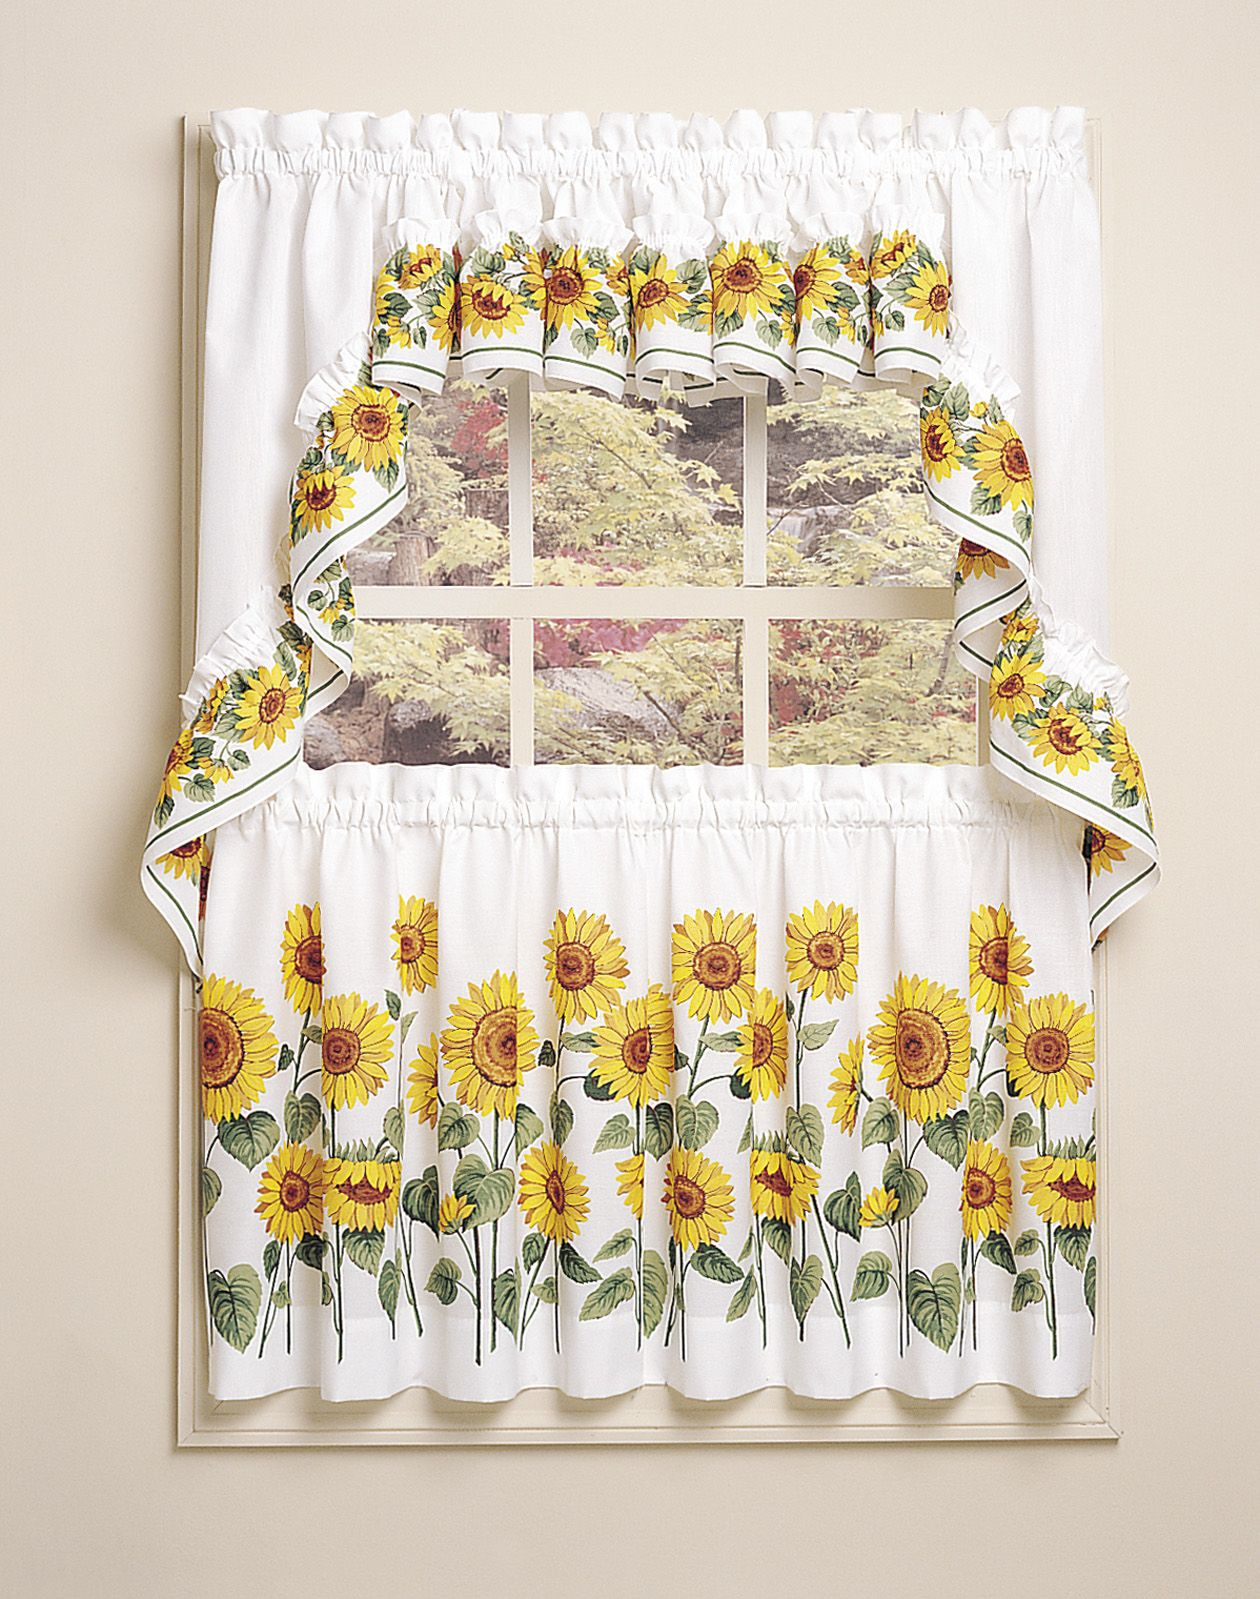 20 Hottest Curtain Designs For 2019 With Images Sunflower